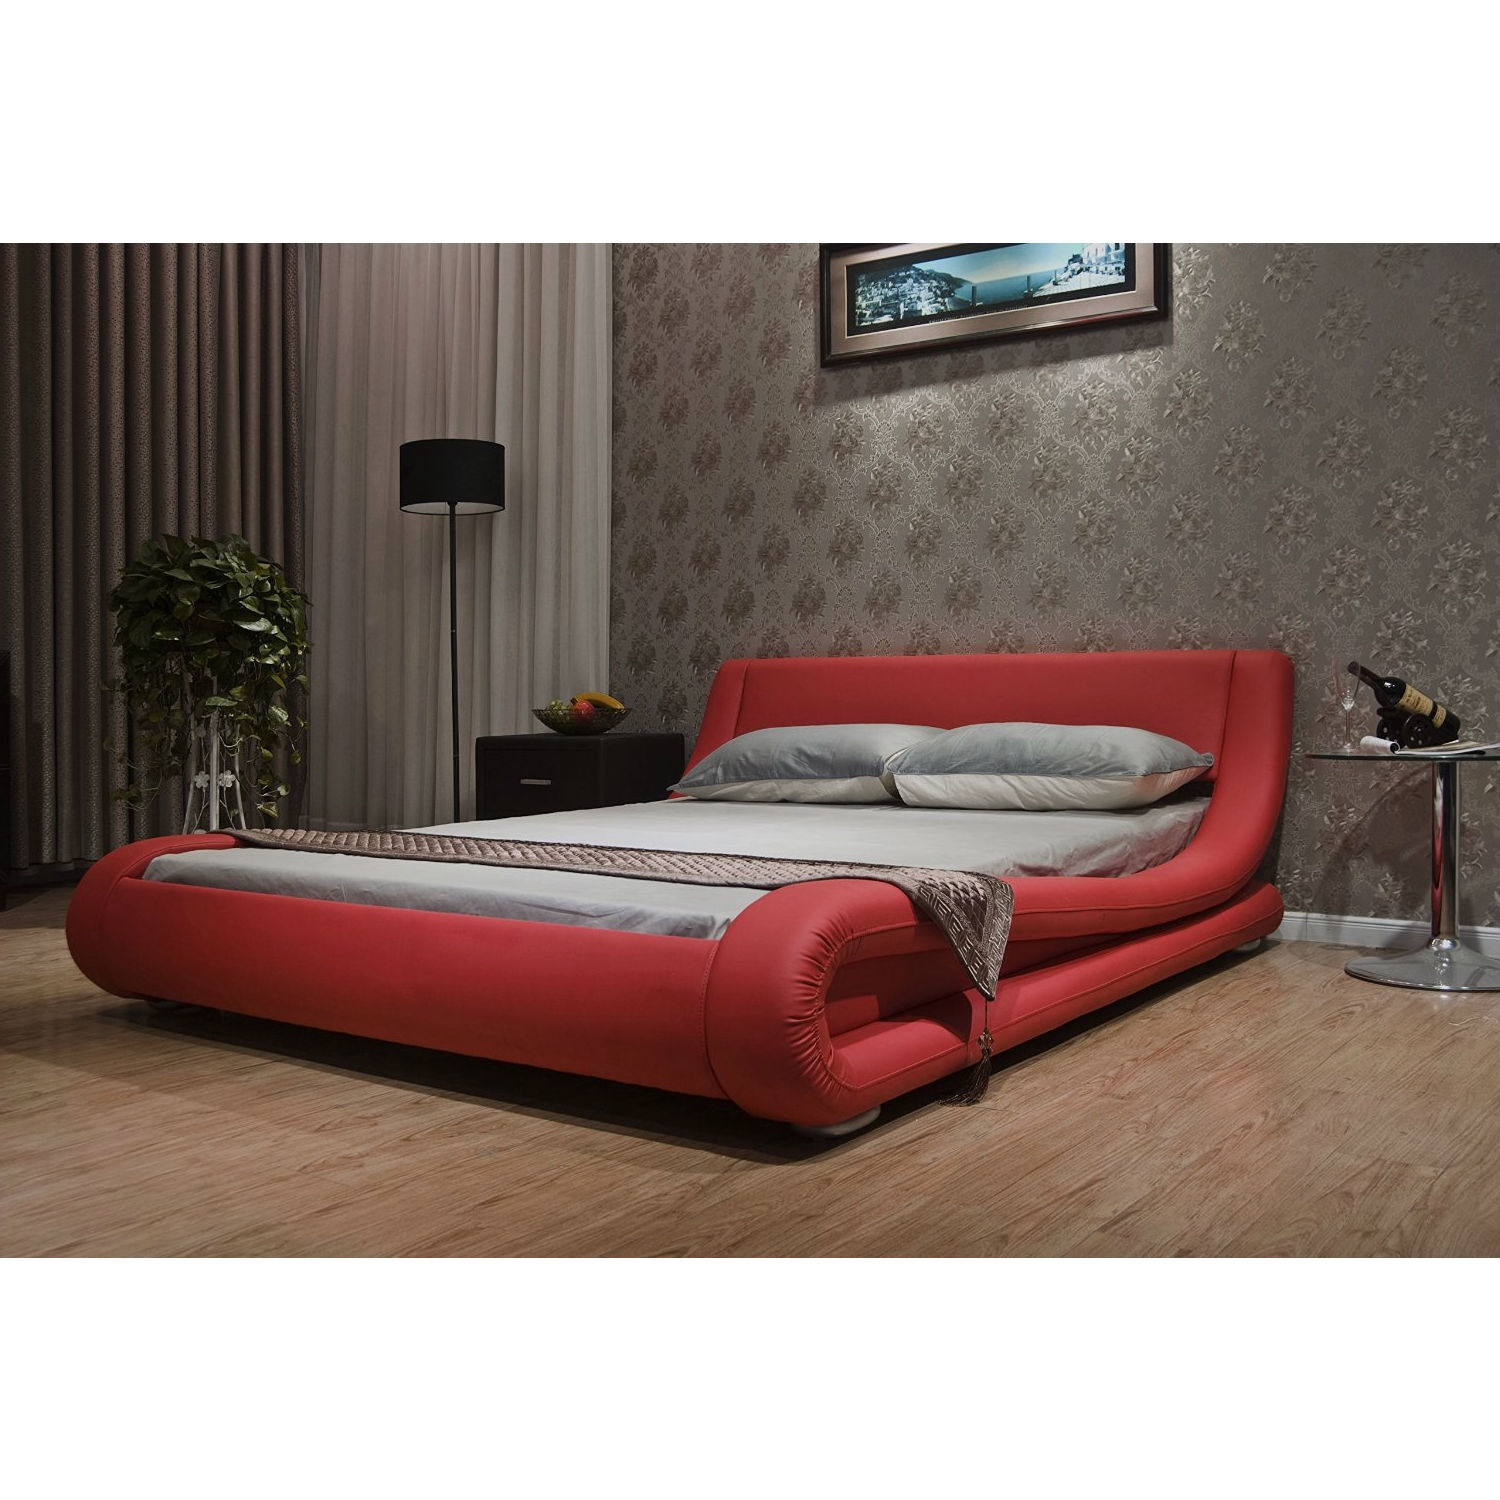 King Size Modern Red Faux Leather Upholstered Platform Bed With